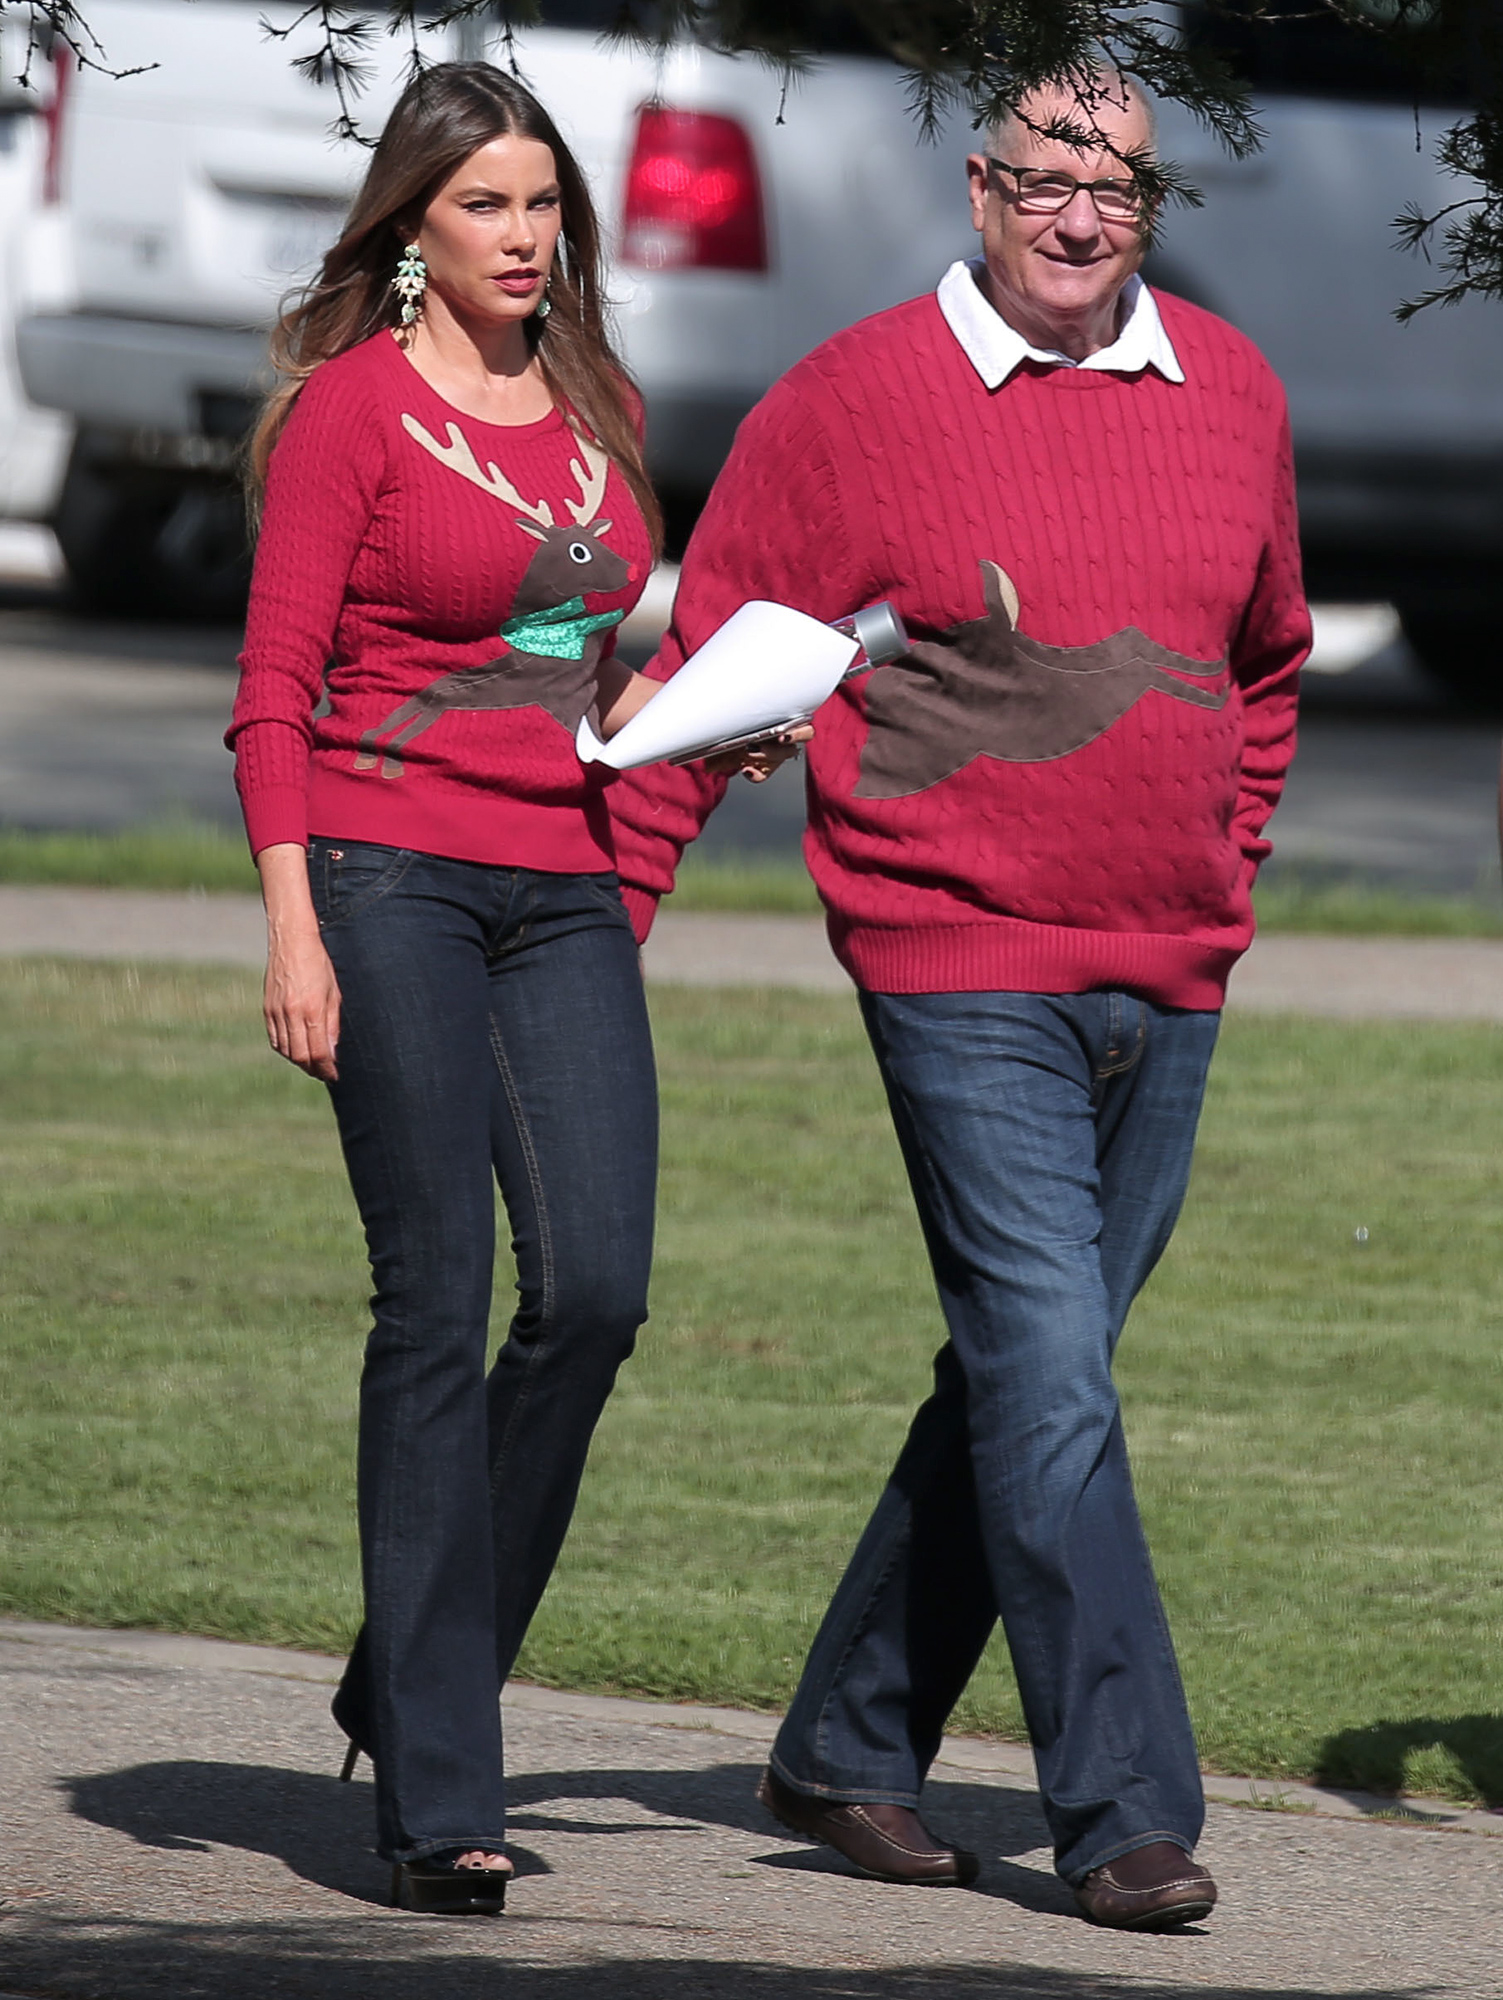 EXCLUSIVE: They complete each other. Sofia Vergara and Ed Oneill wear matching Christmas reindeer sweaters on the set of Modern Family filming in Los Angeles